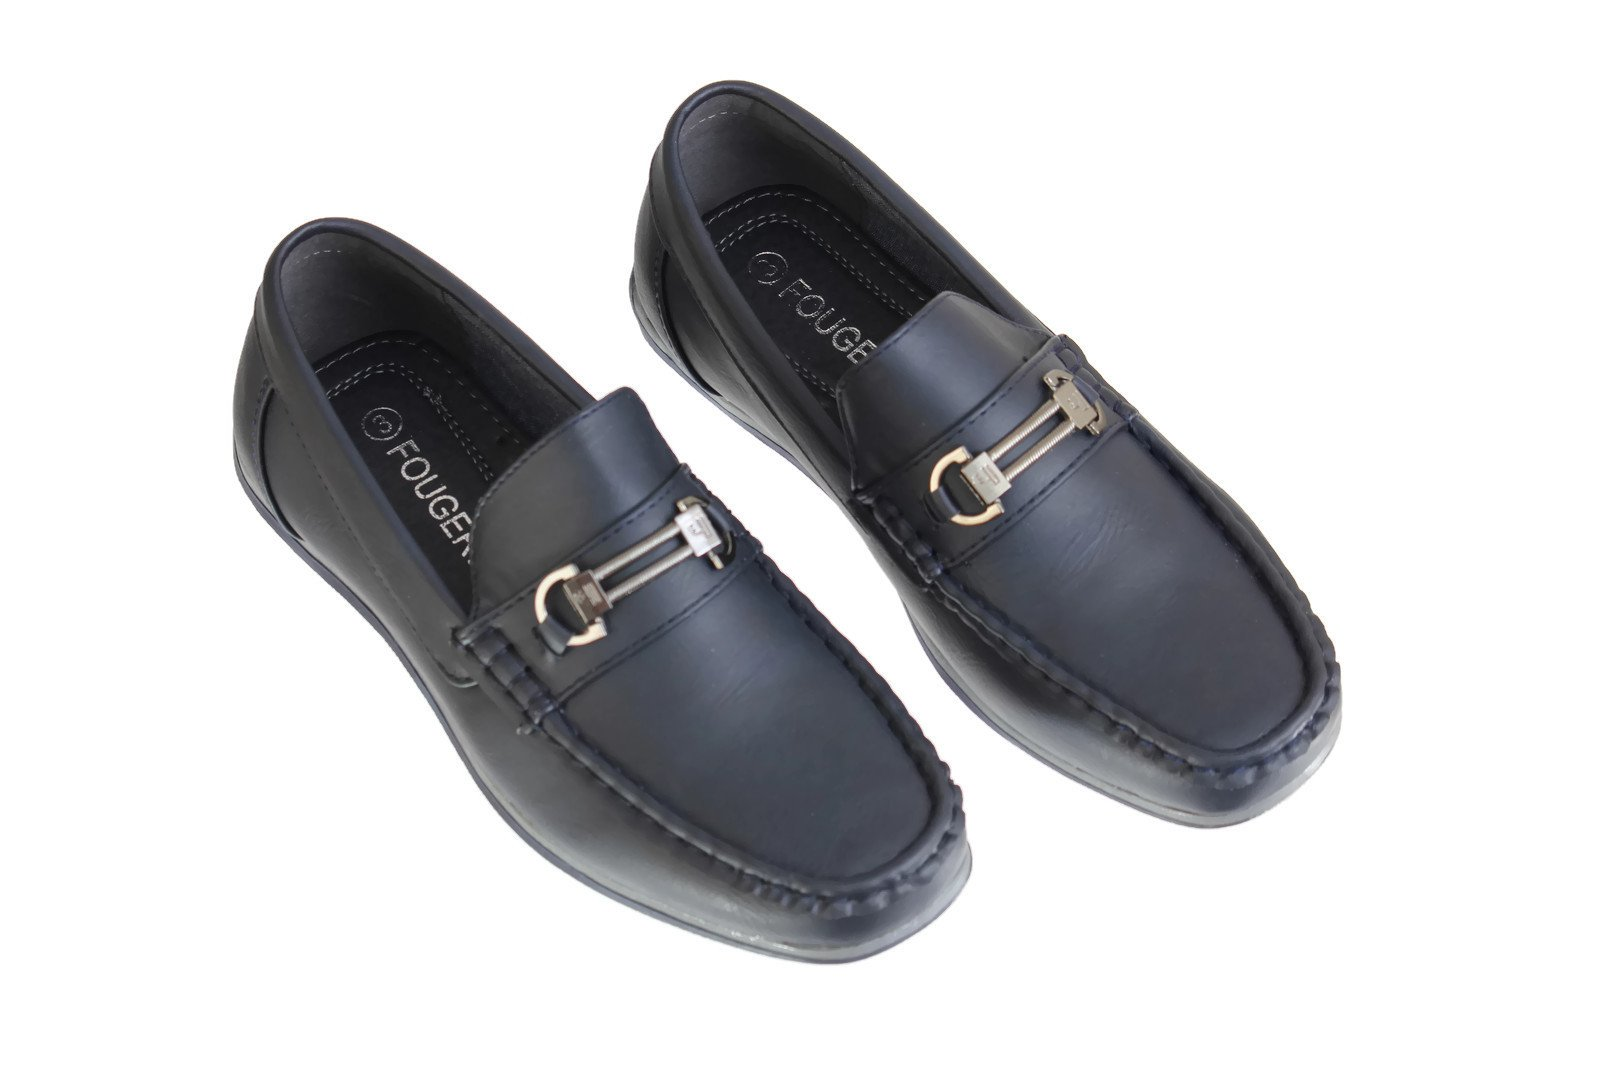 Boys Navy Loafer Dress Shoes With a Buckle Accent (4 M US Big Kid)